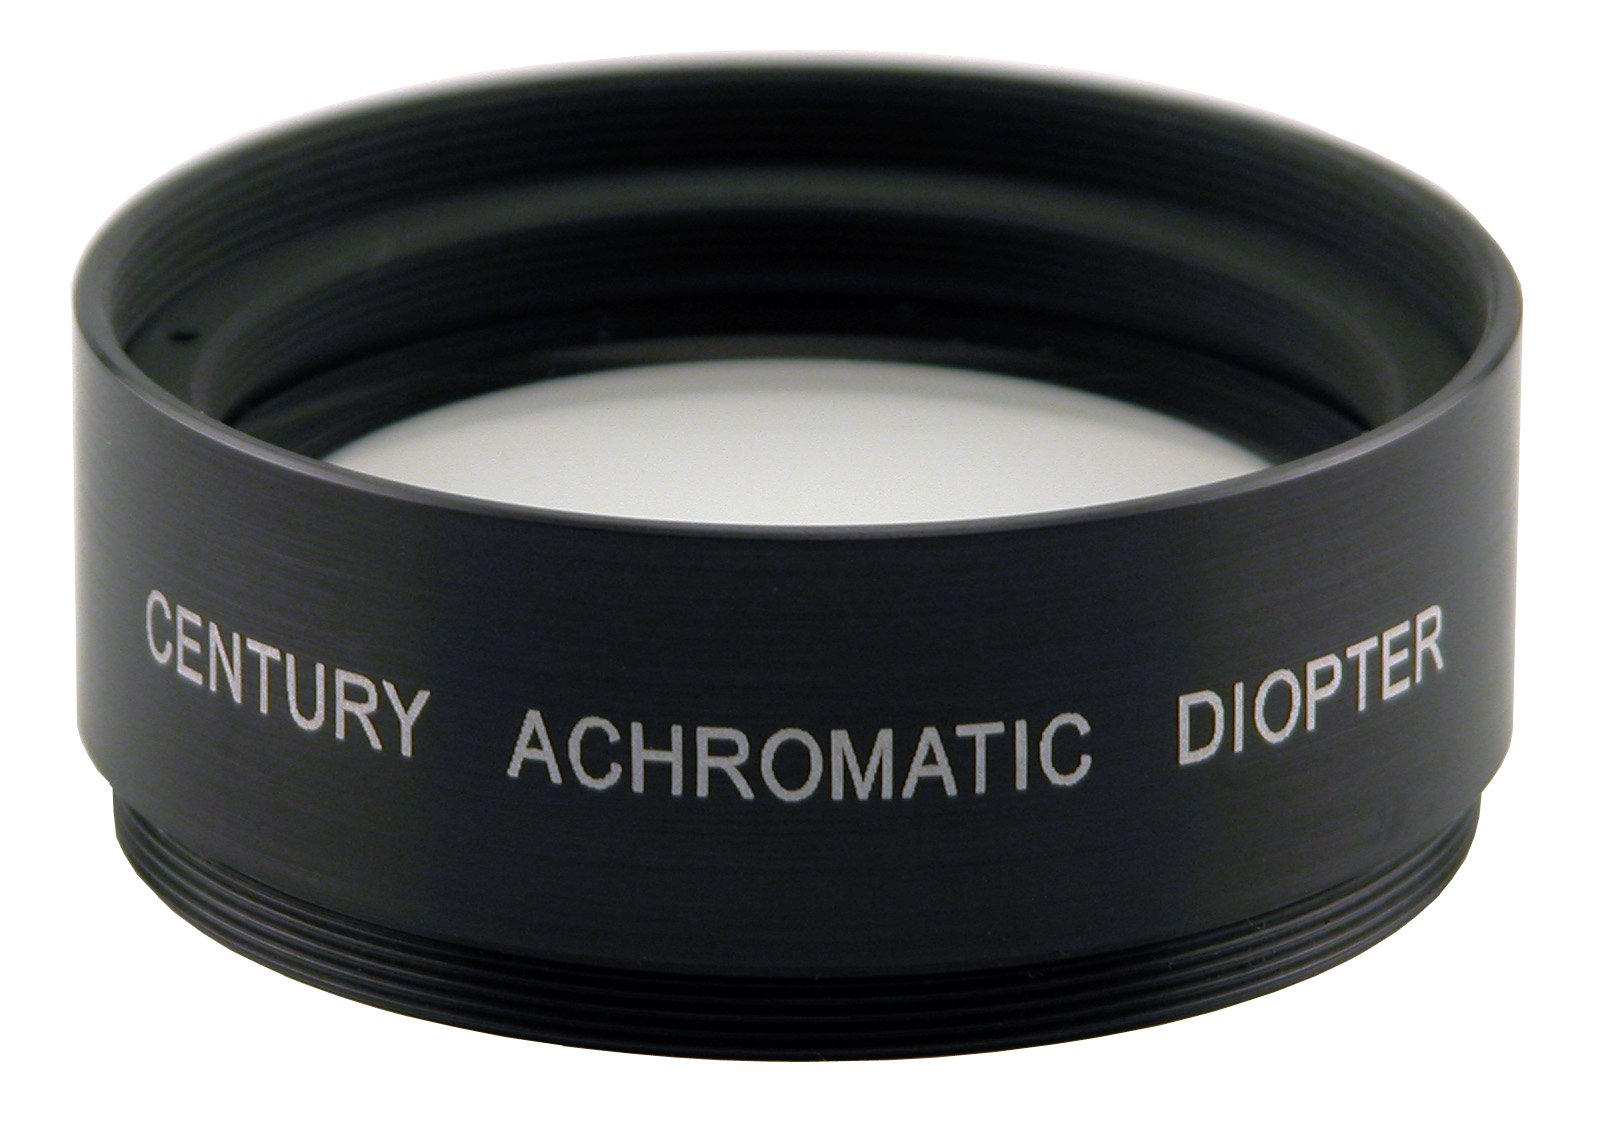 Century 58mm +2.0 Achromatic Diopter by B + W